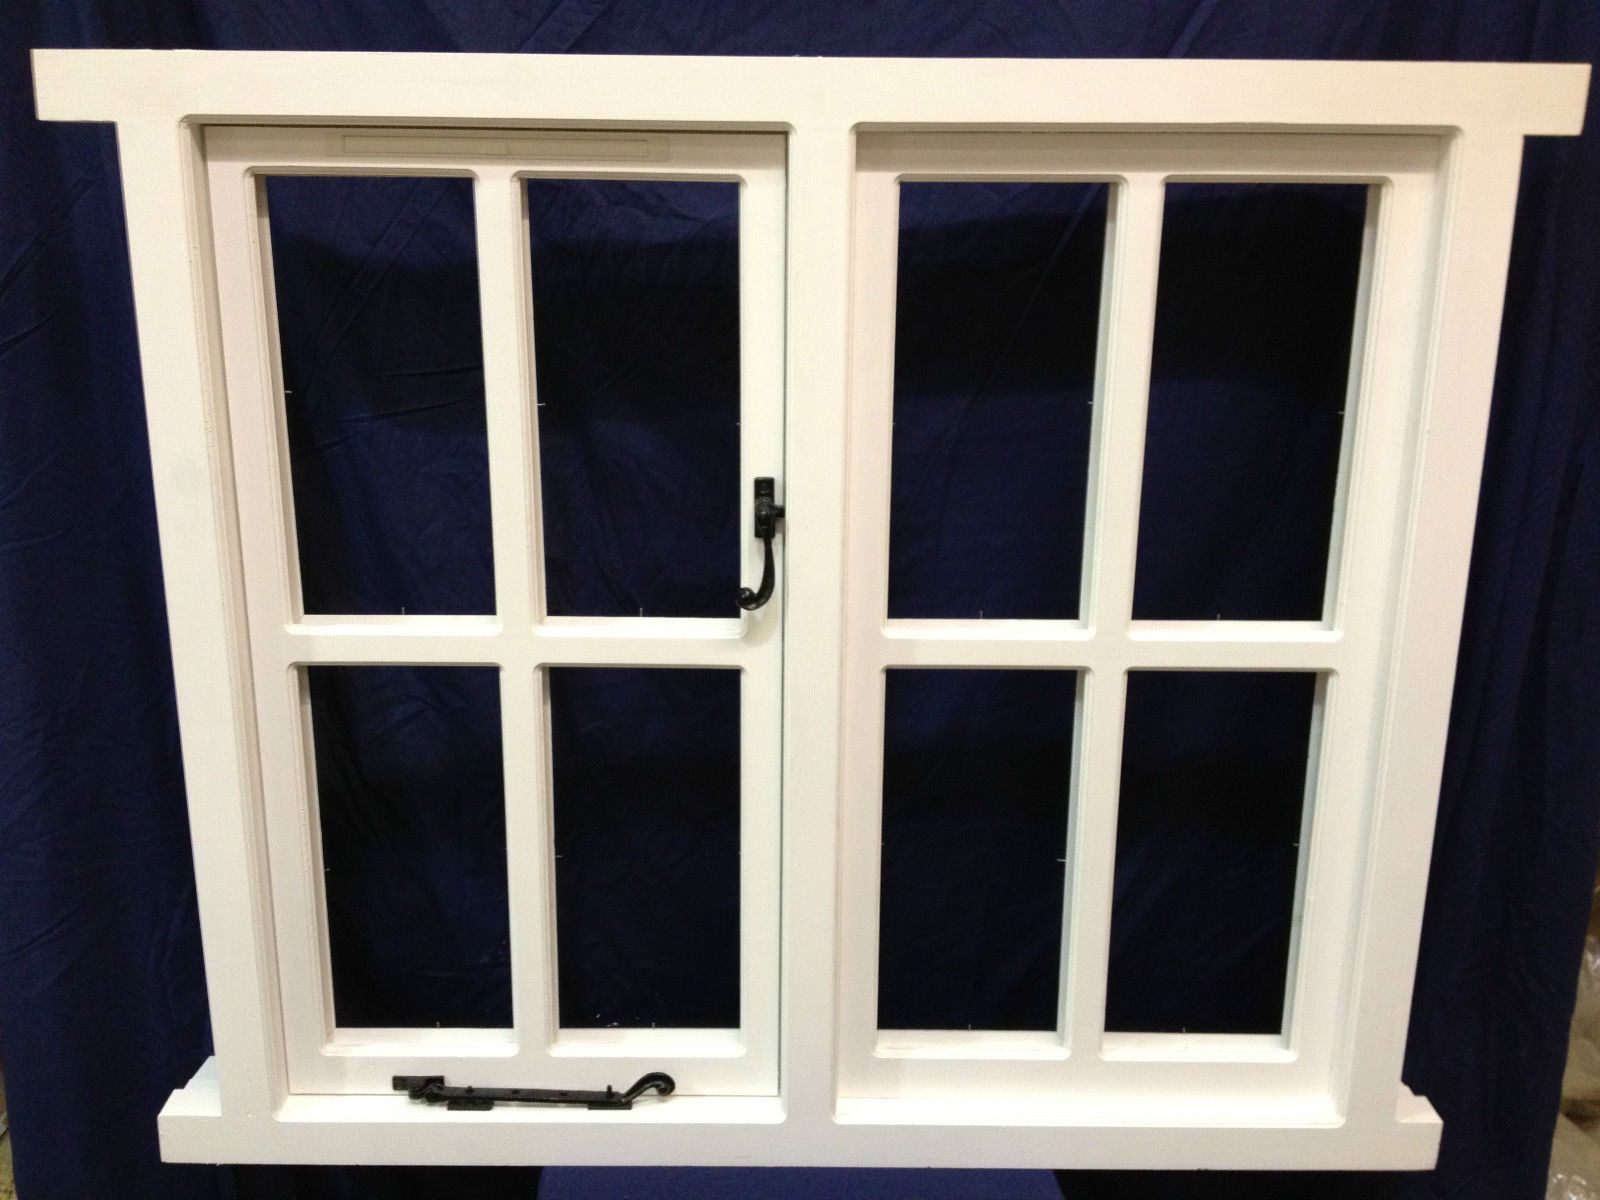 Windows Made To Measure Made To Measure Doors And Windows Bespoke Windows To Size U2013 Fitted Durable Windows Wooden Cottage Casement Windows Timber Windows